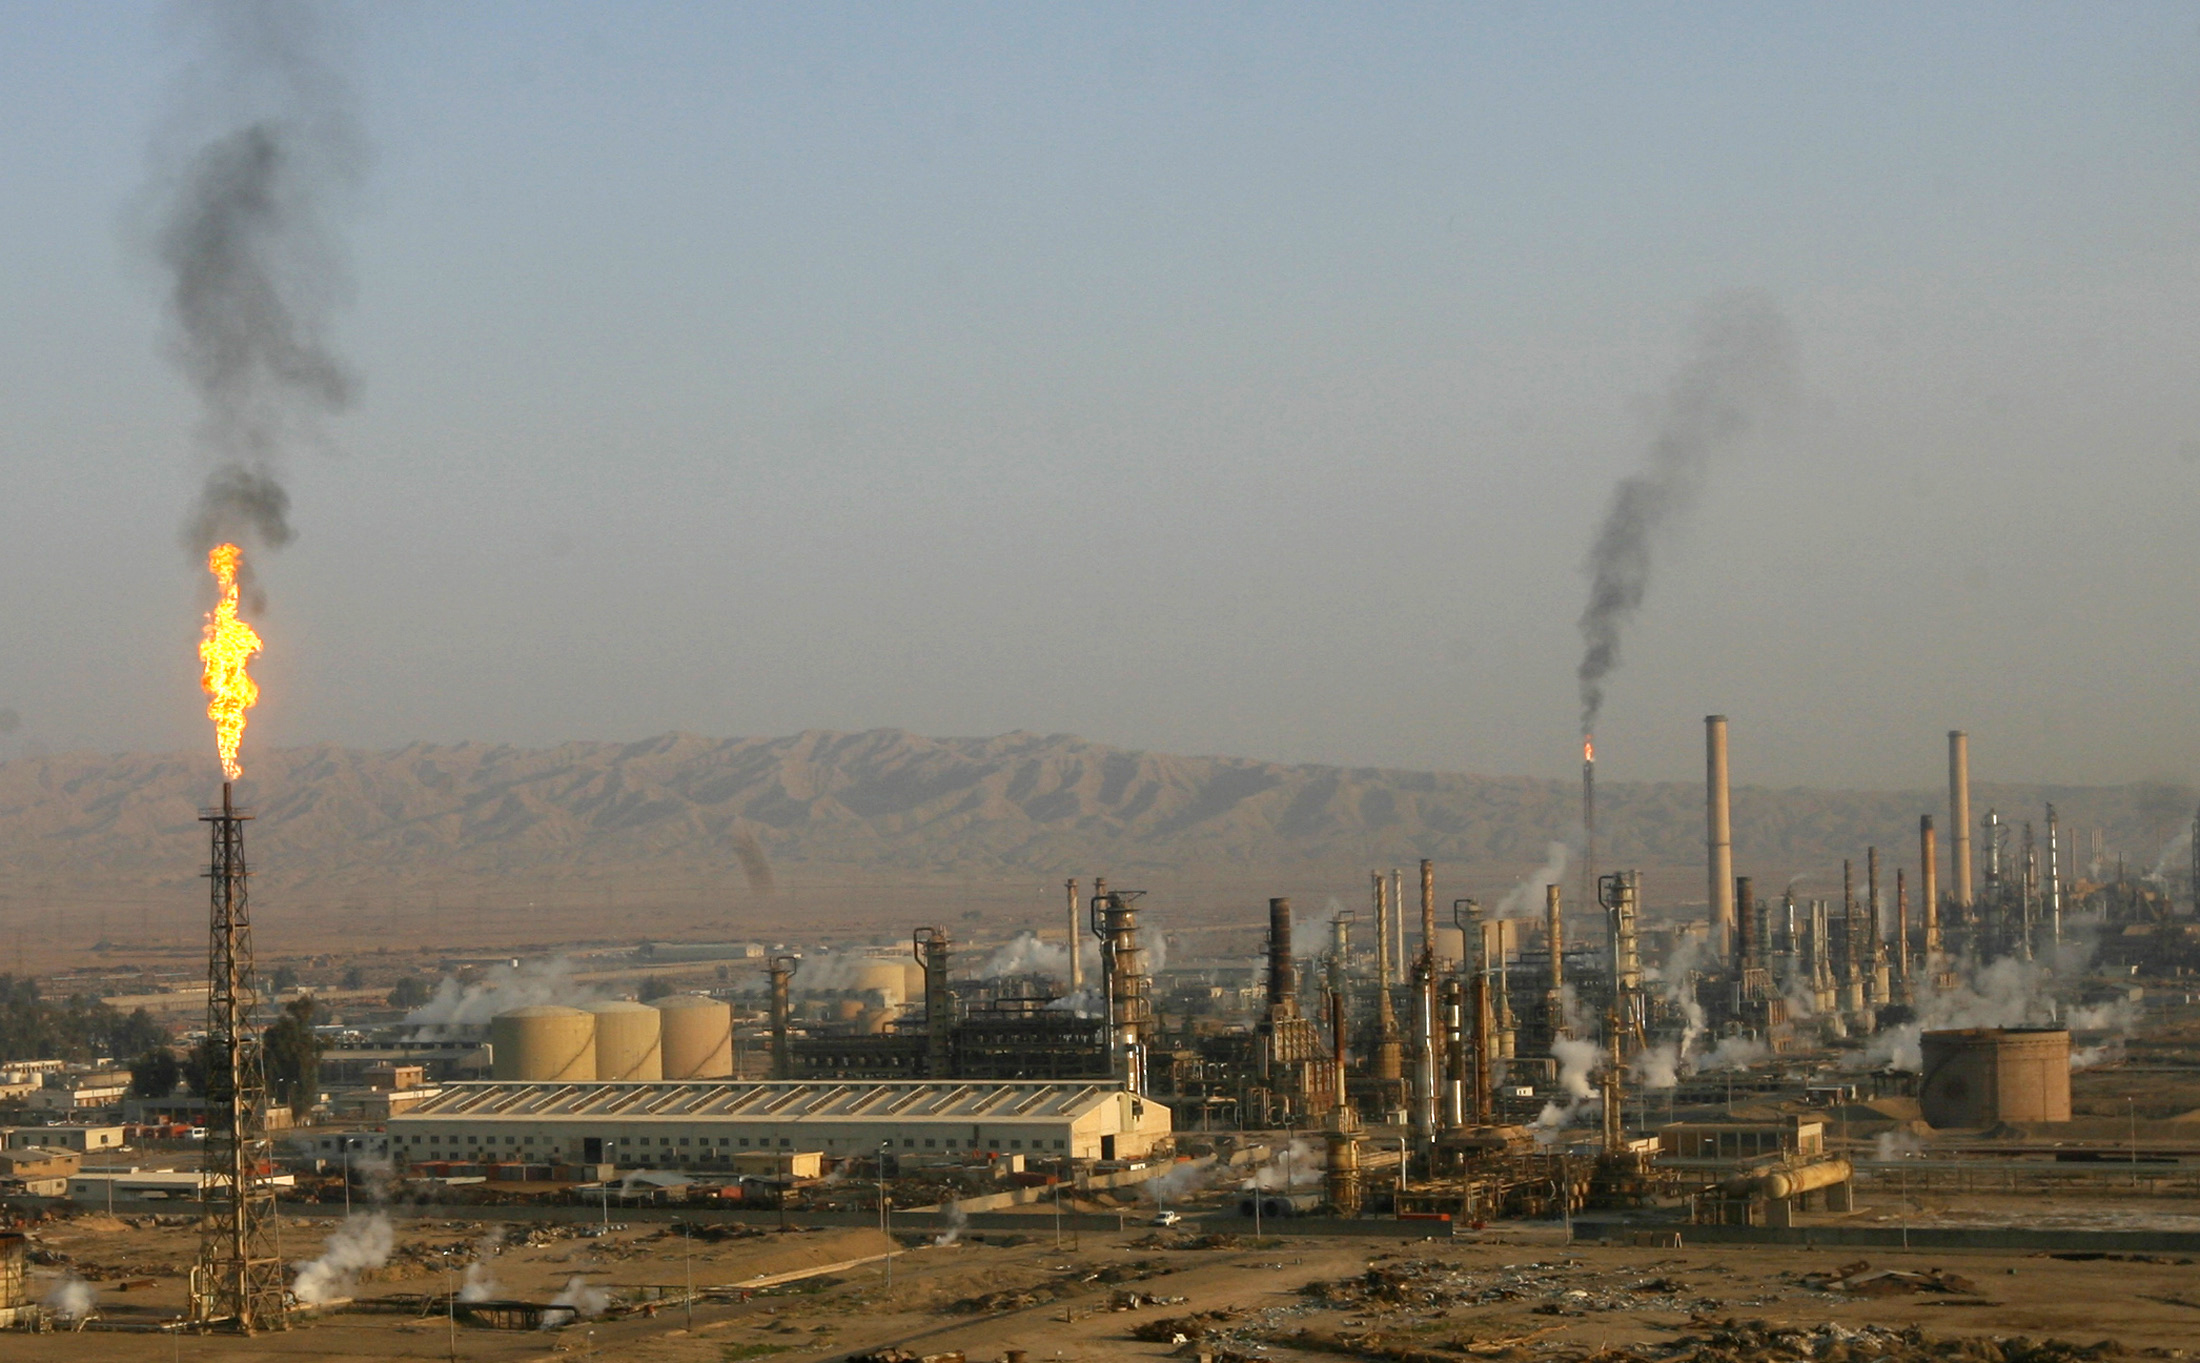 A general view of Baiji oil refinery in Baiji